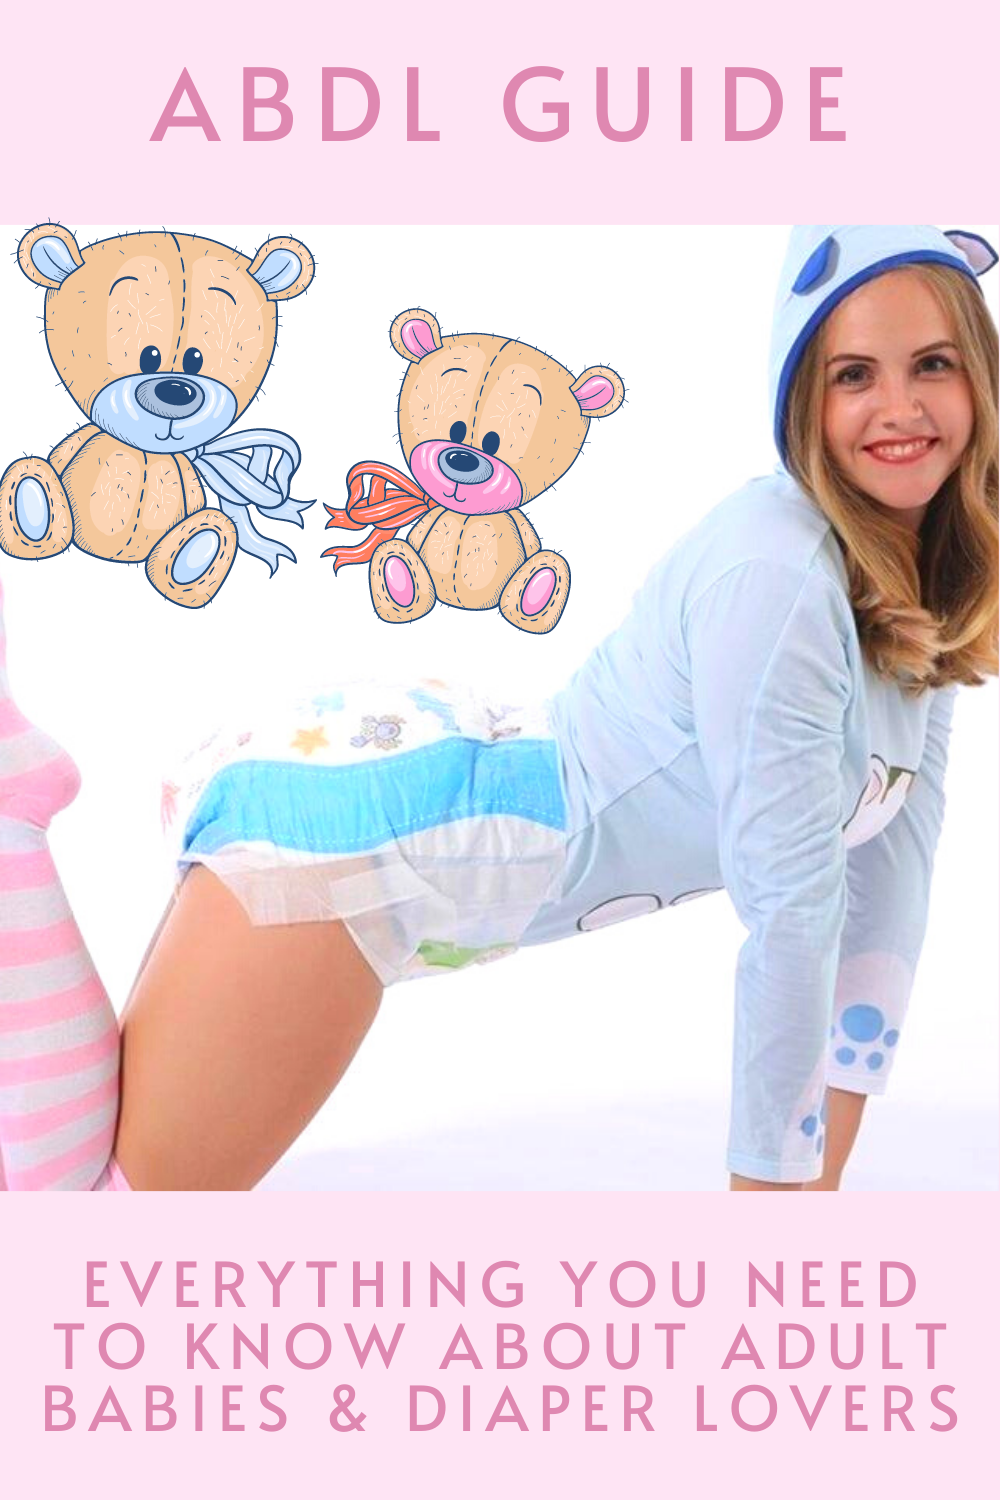 What is ABDL? ABDL is an acronym that stands for 'adult baby' and 'diaper lover' and describes a community of people in the wider kink community. An adult baby is an adult who chooses to return mentally to a childlike state, either for fun or eroticism. In scientific terms, this is called 'paraphilic infantilism.' It describes a kind of 'age-play,' which is a specific form of fantasy role play where a partner embodies a person of a different age than their actual chronological age.